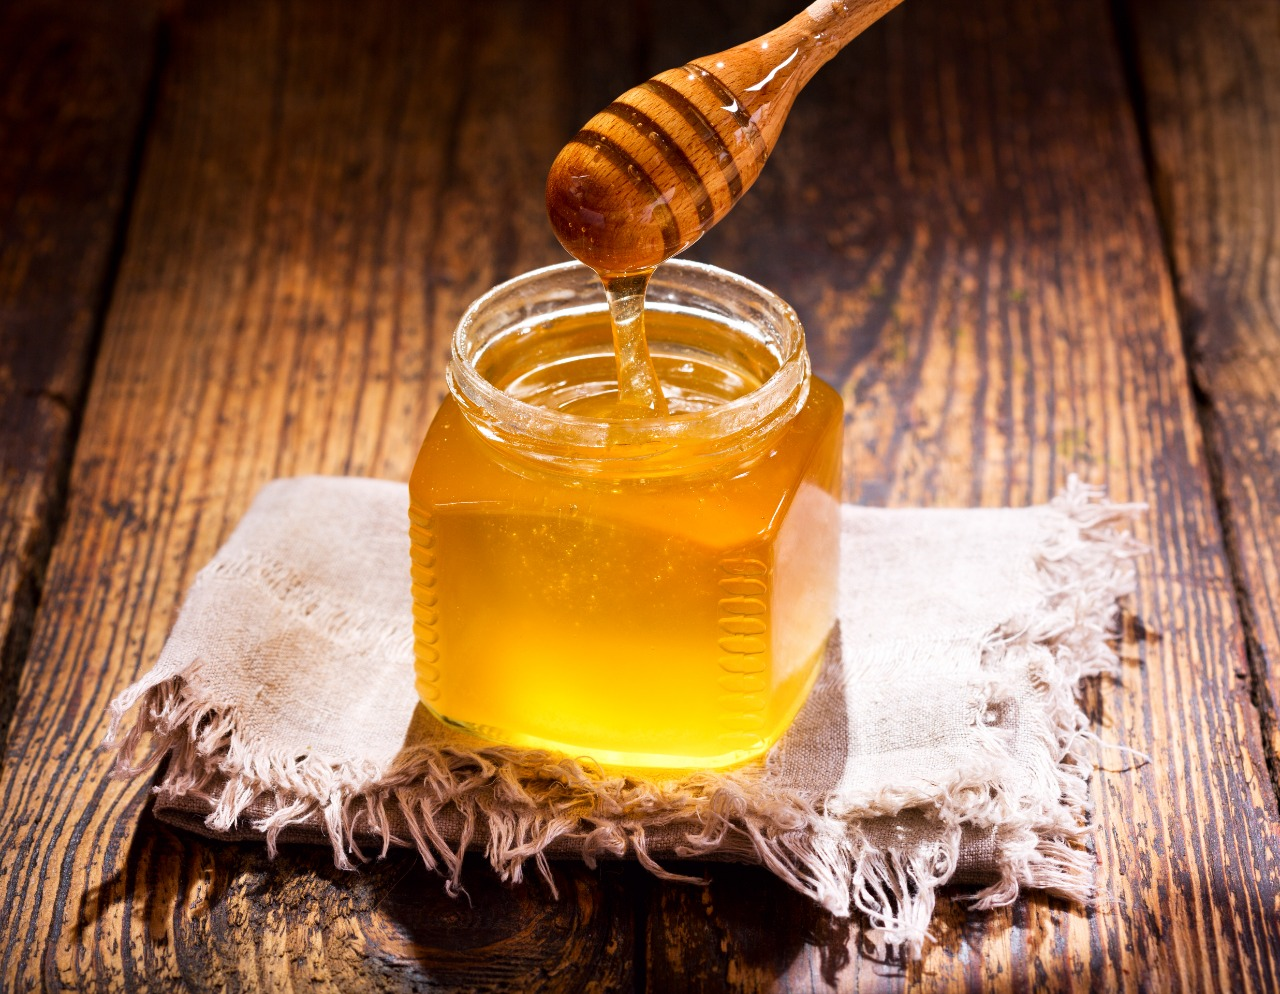 honey in a jar on a wooden table